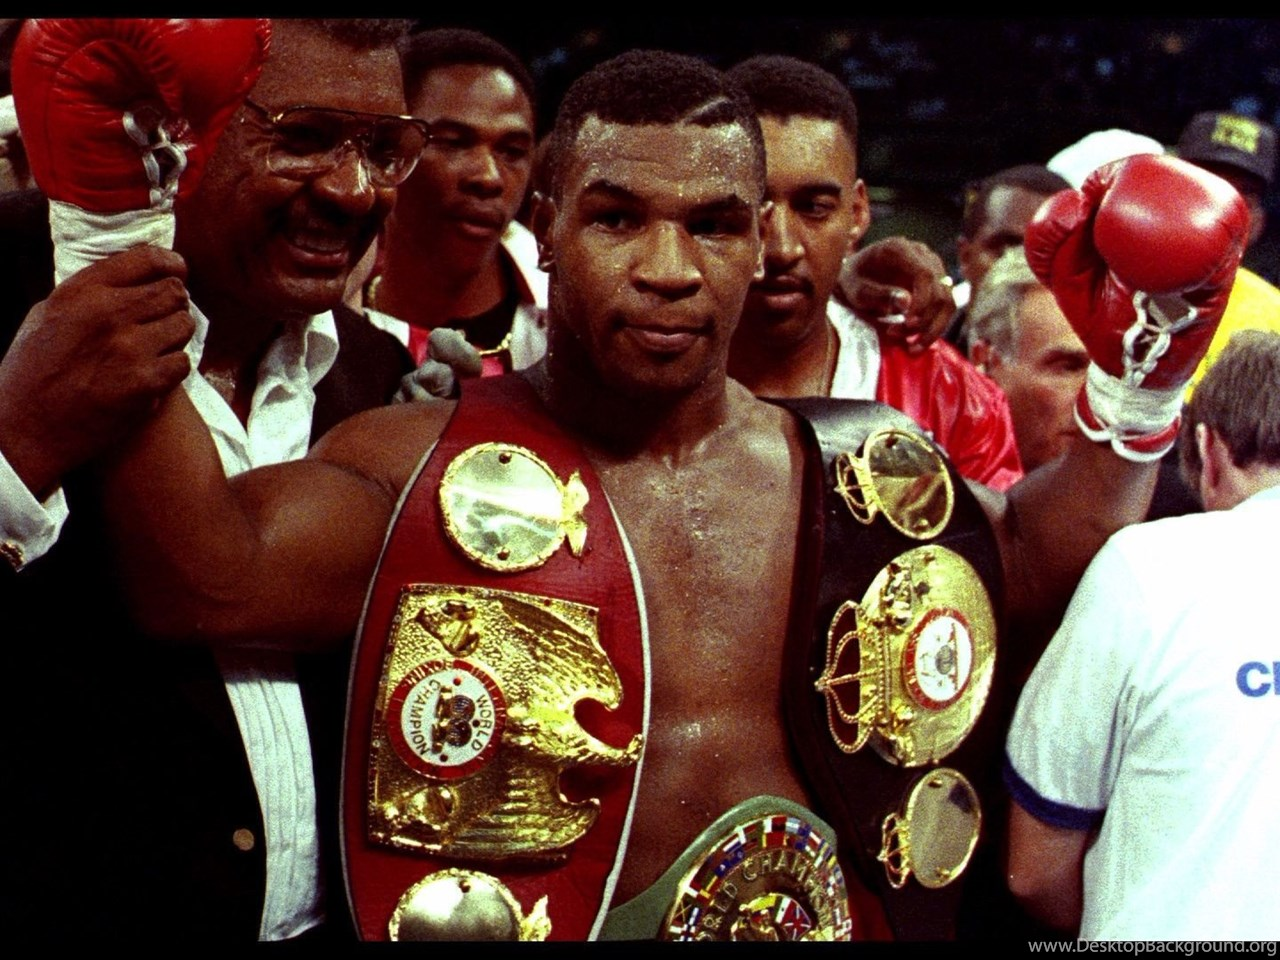 Mike Tyson Wallpapers Wallpapers Cave Desktop Background